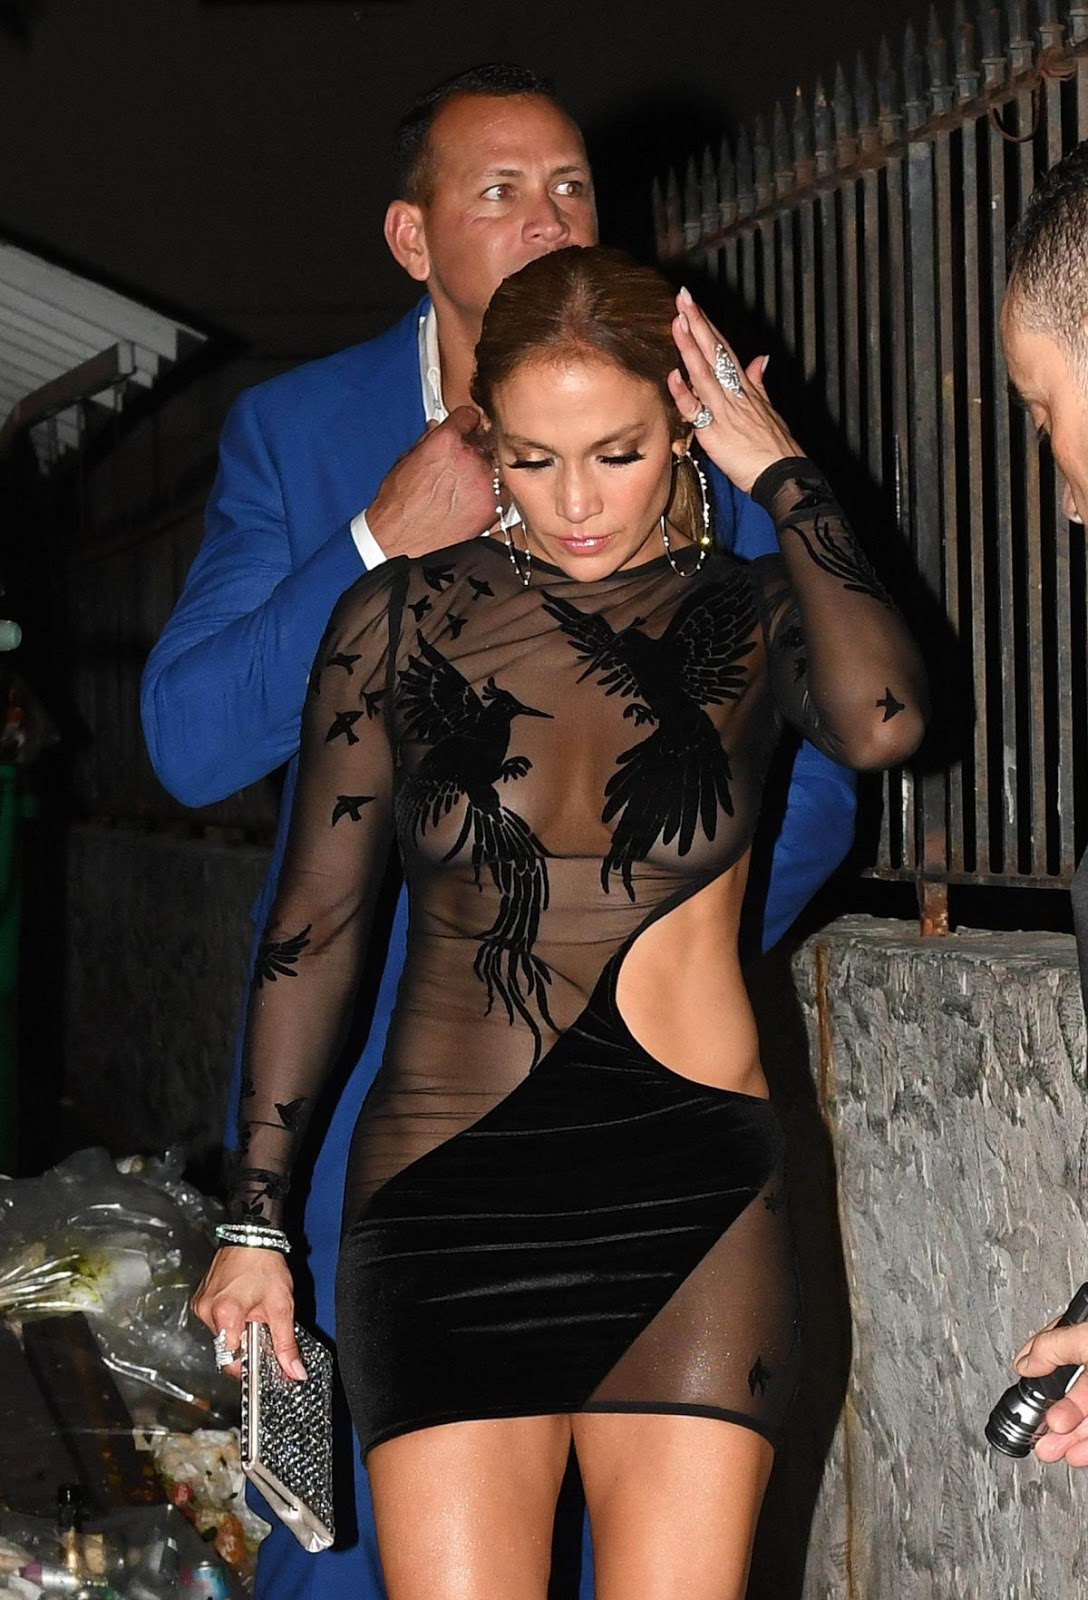 JLo is nearly nude for 48th birthday celebrations